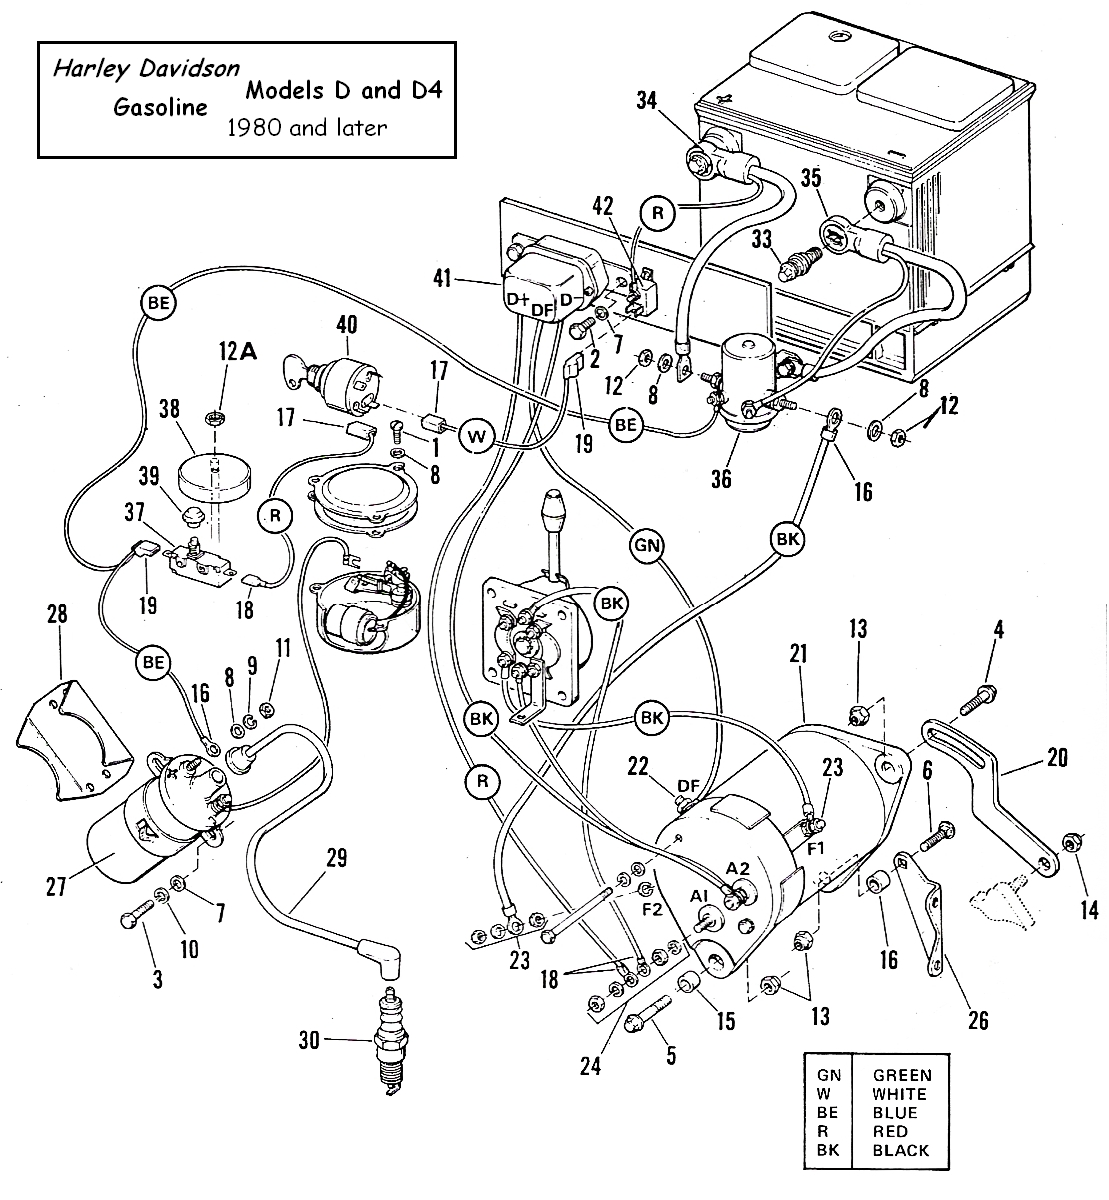 typical golf cart wiring diagram starter generator wiring diagram club car starter yamaha golf cart starter generator wiring diagram wiring diagram